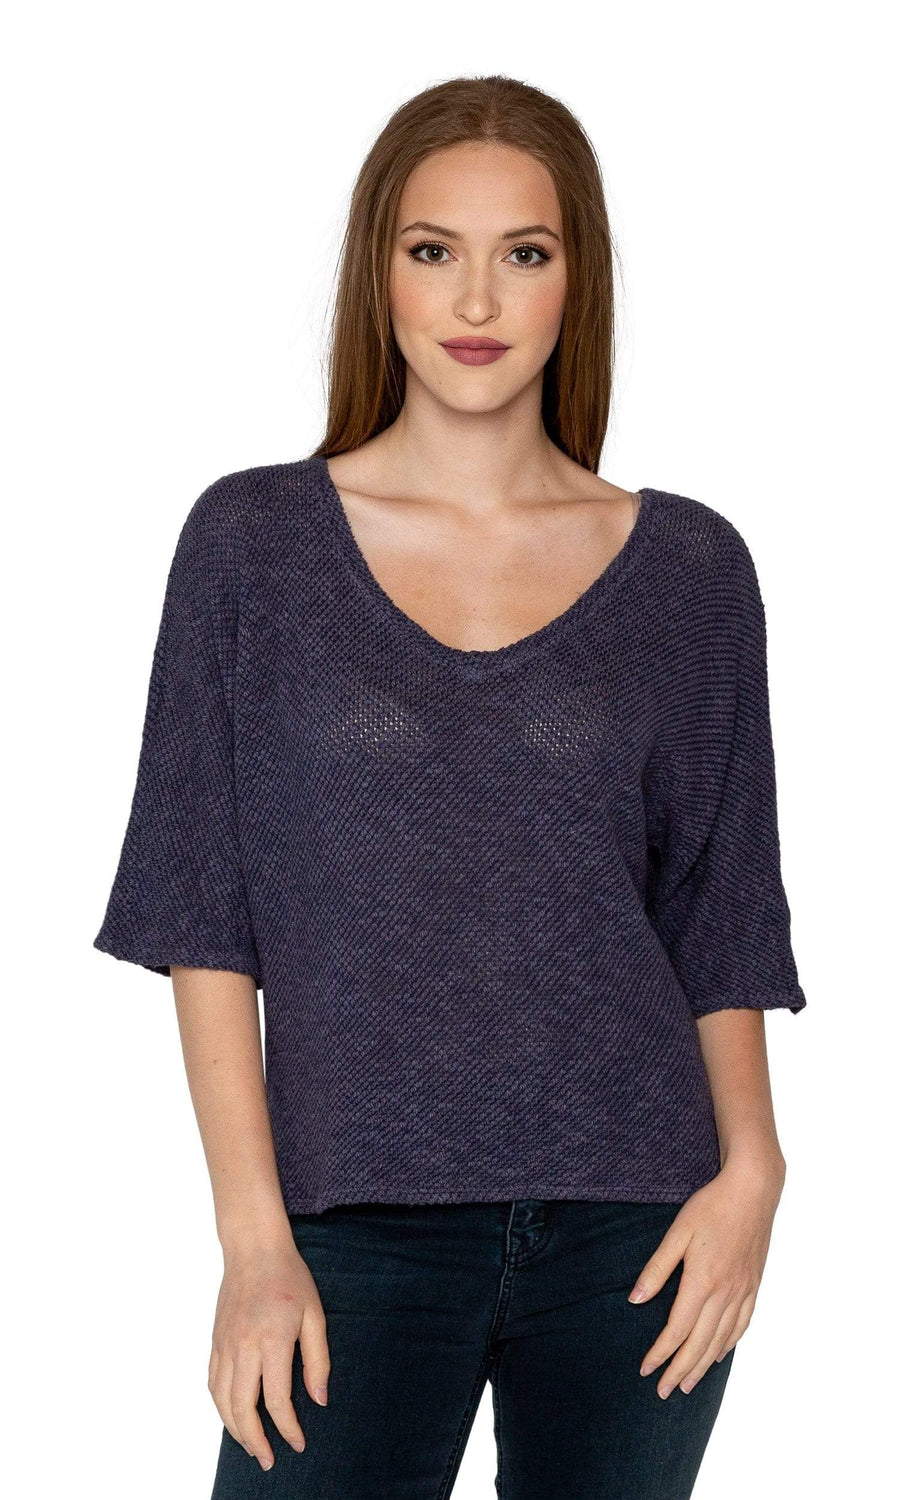 Velvet by Graham & Spencer Dominika Cotton Crochet 3/4 Sleeve Top